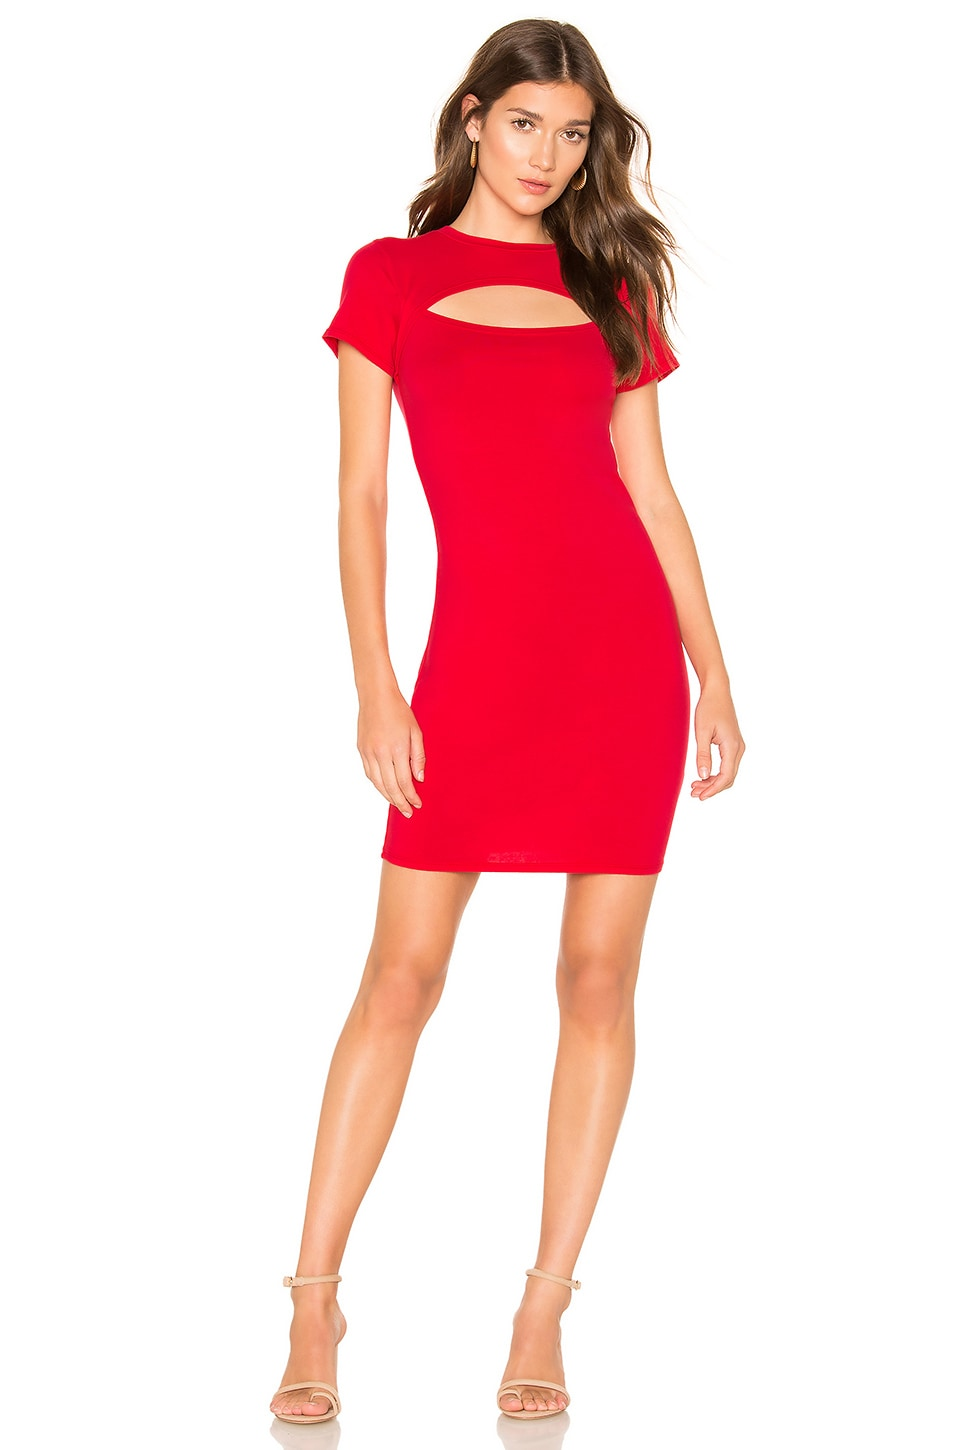 Bobi Draped Modal Jersey Bodycon Dress in Chili